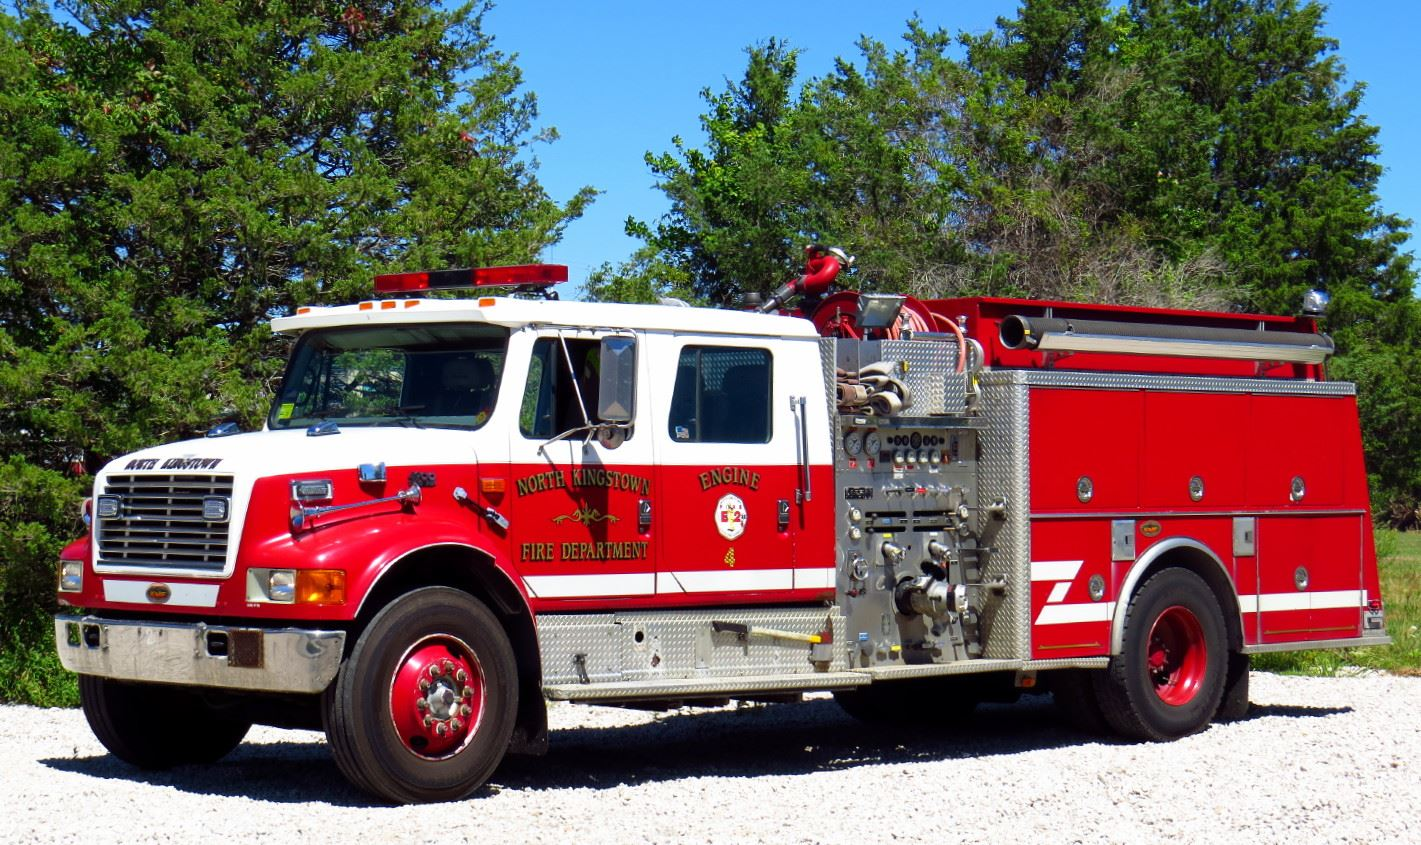 North Kingstown Engine 4